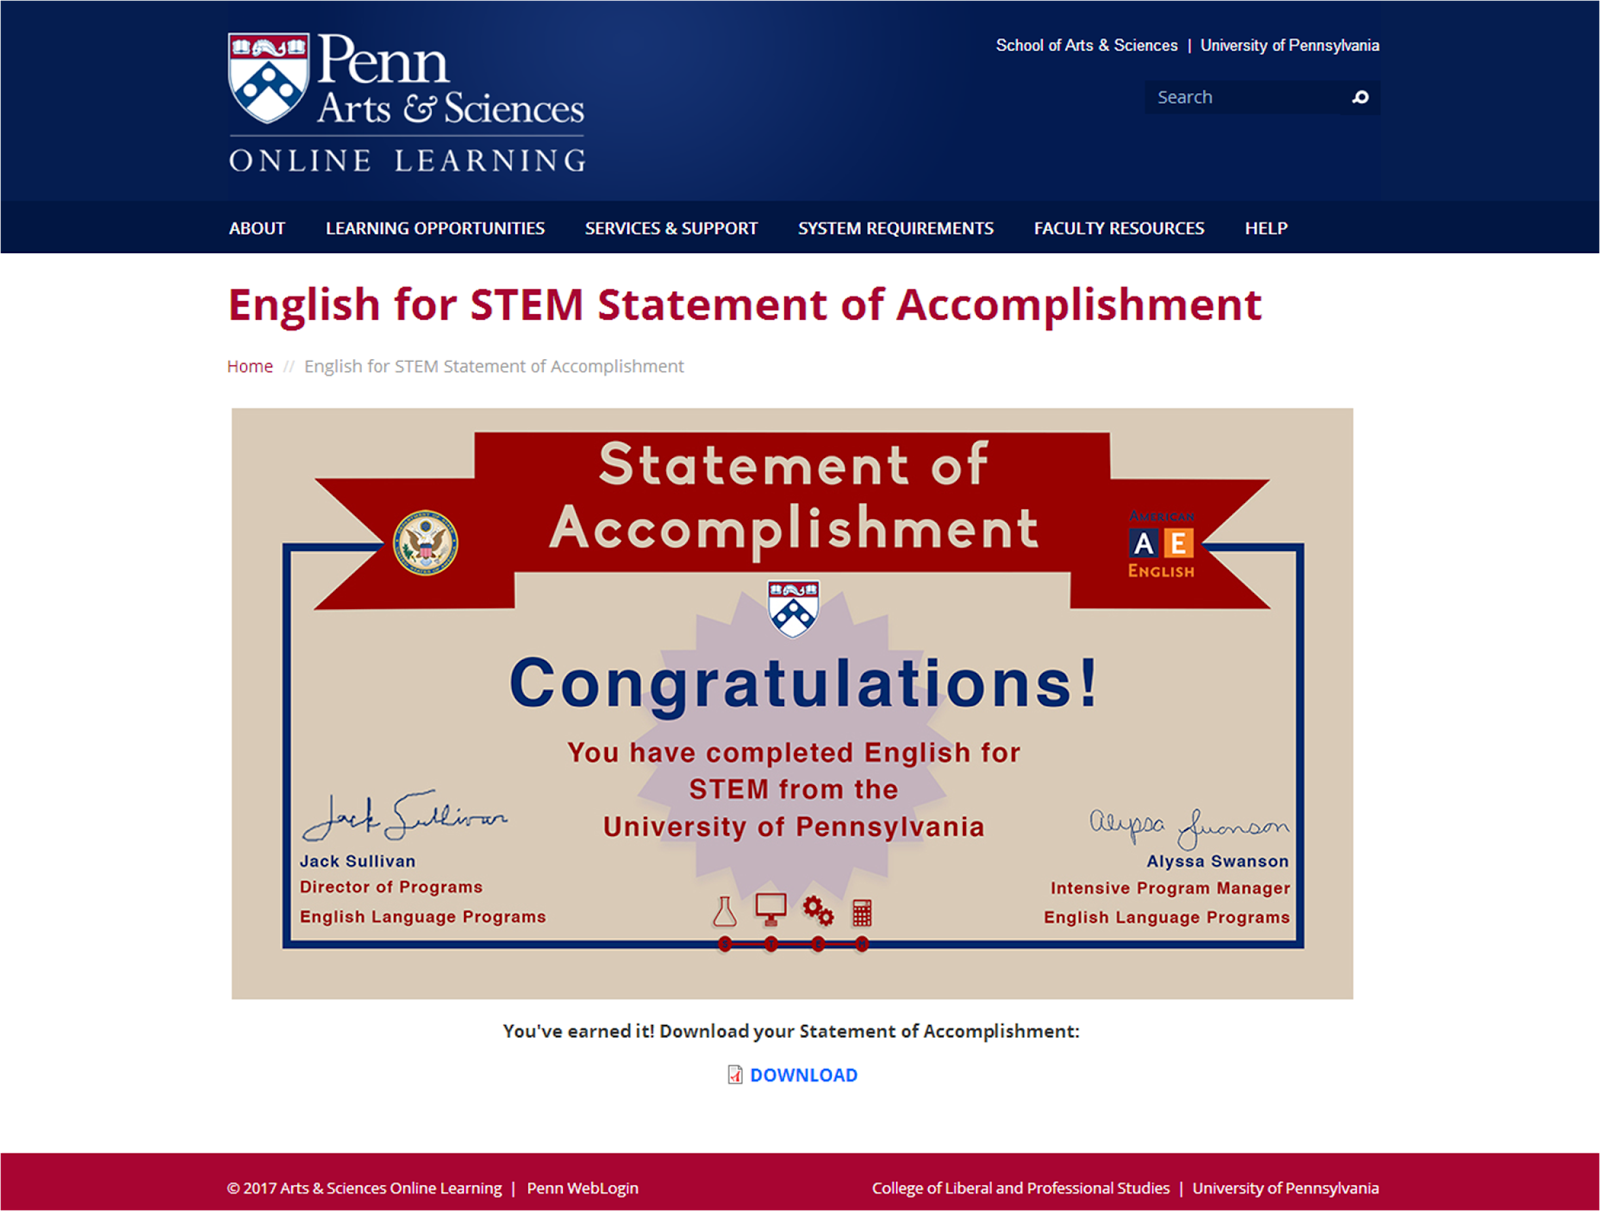 English for Science, Technology, Engineering, and Mathematics (STEM) Statement of Accomplishment